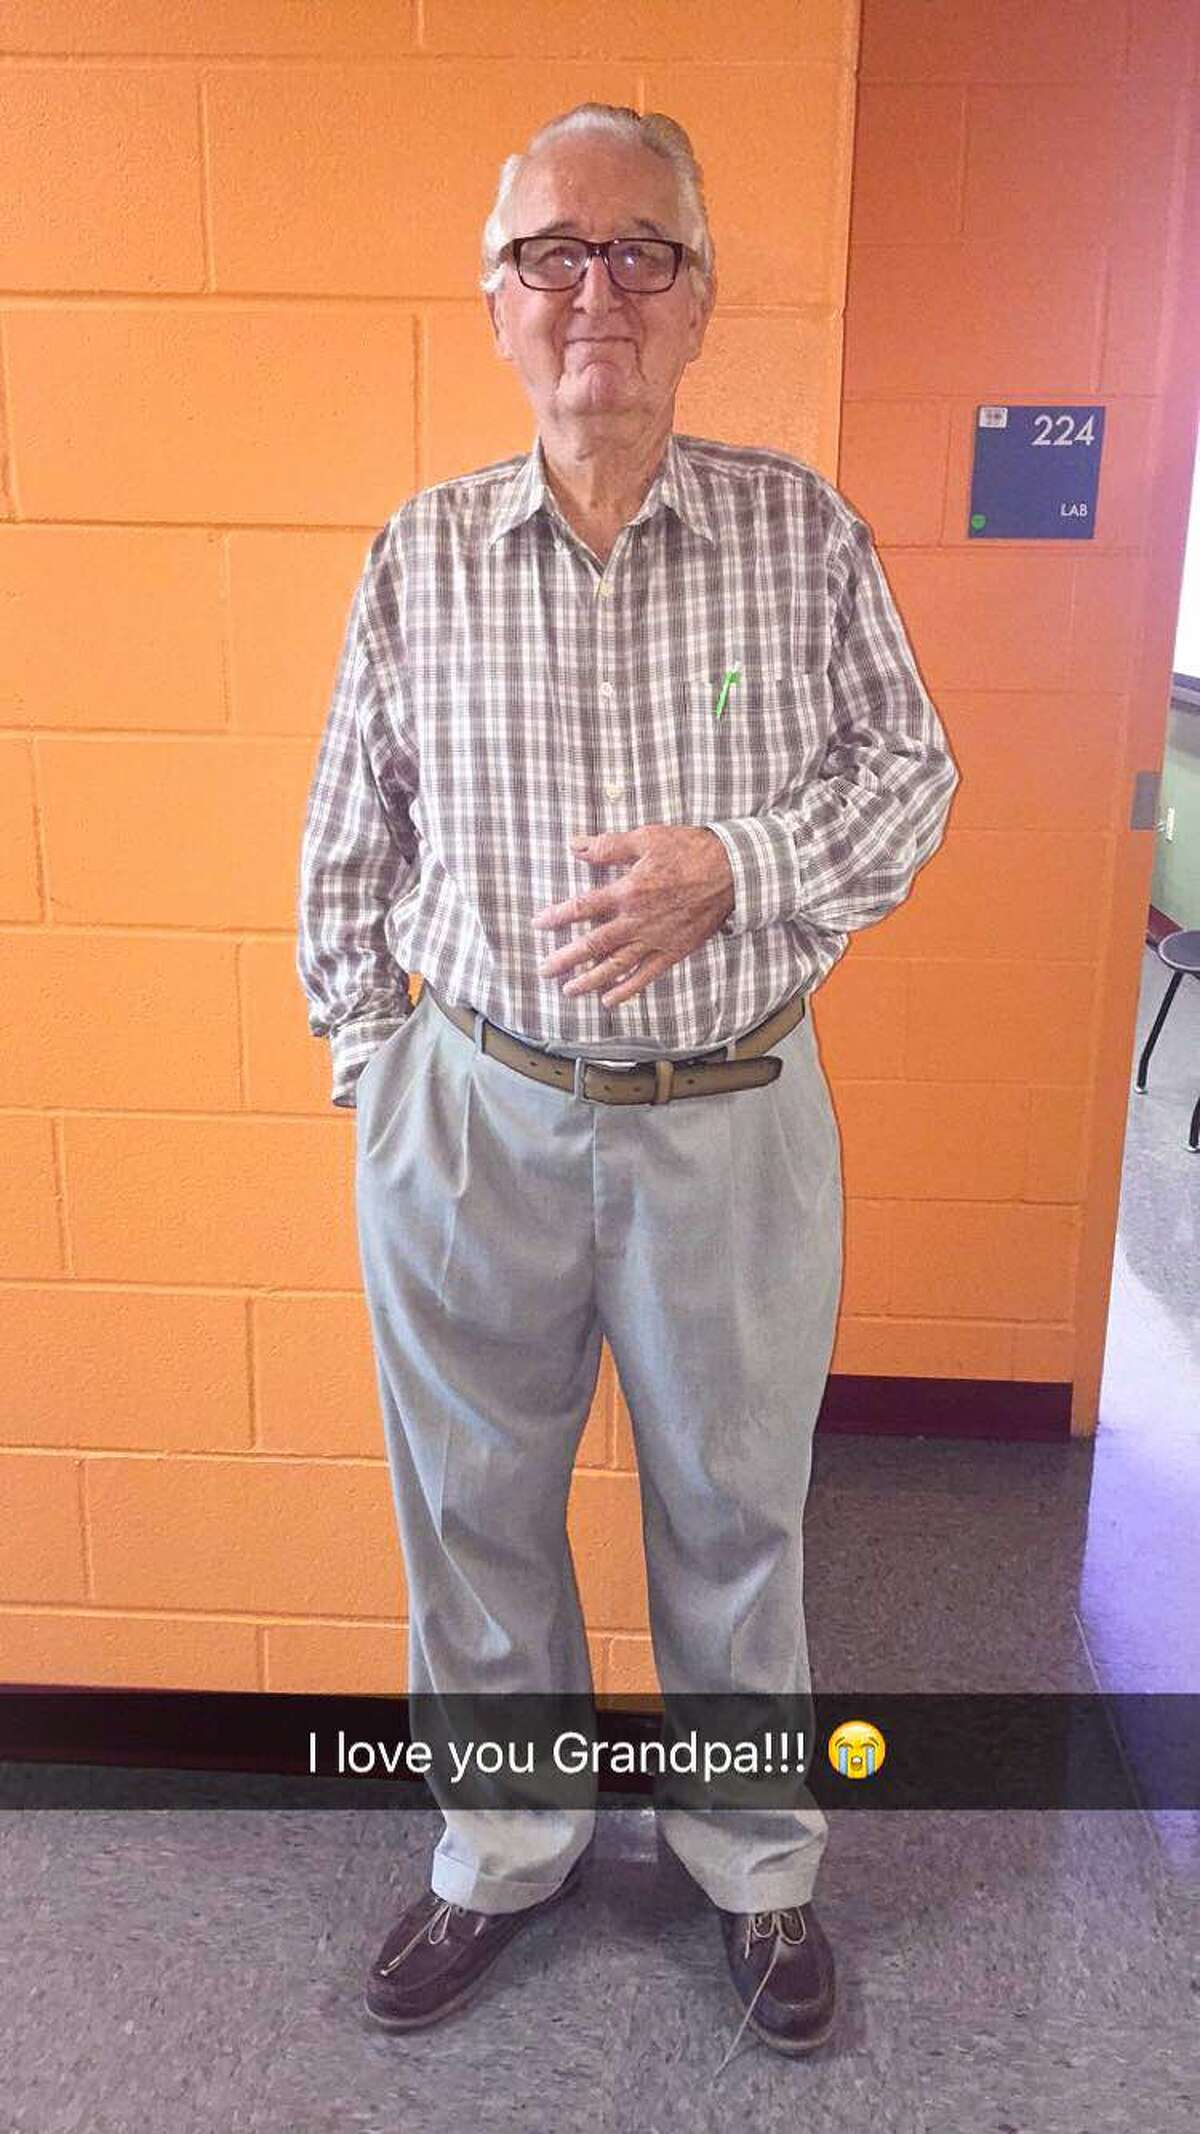 Rene Neira, 82, plans to earn his associate's degree this semester before heading to the University of Texas at San Antonio to get his bachelor's in economics.